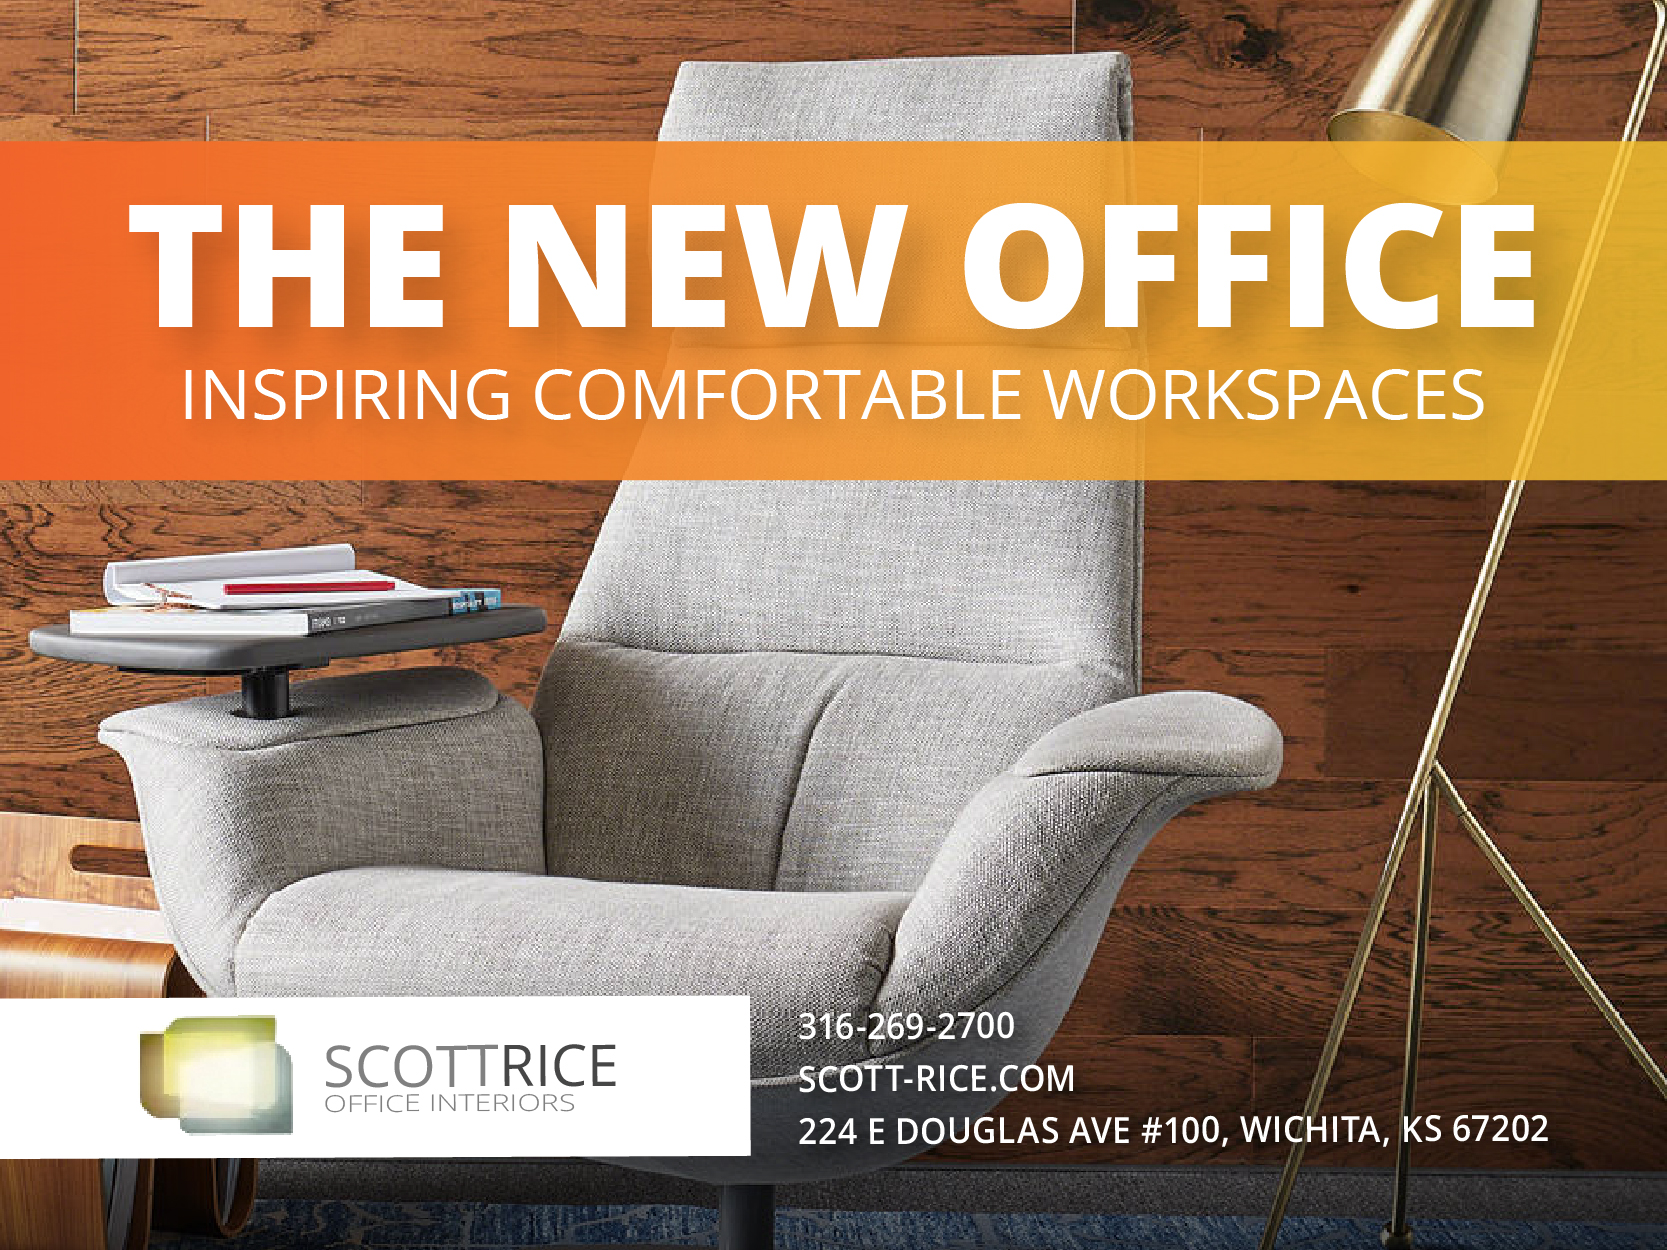 SR_Inpire Comfortable Workspaces_Email Blast-01